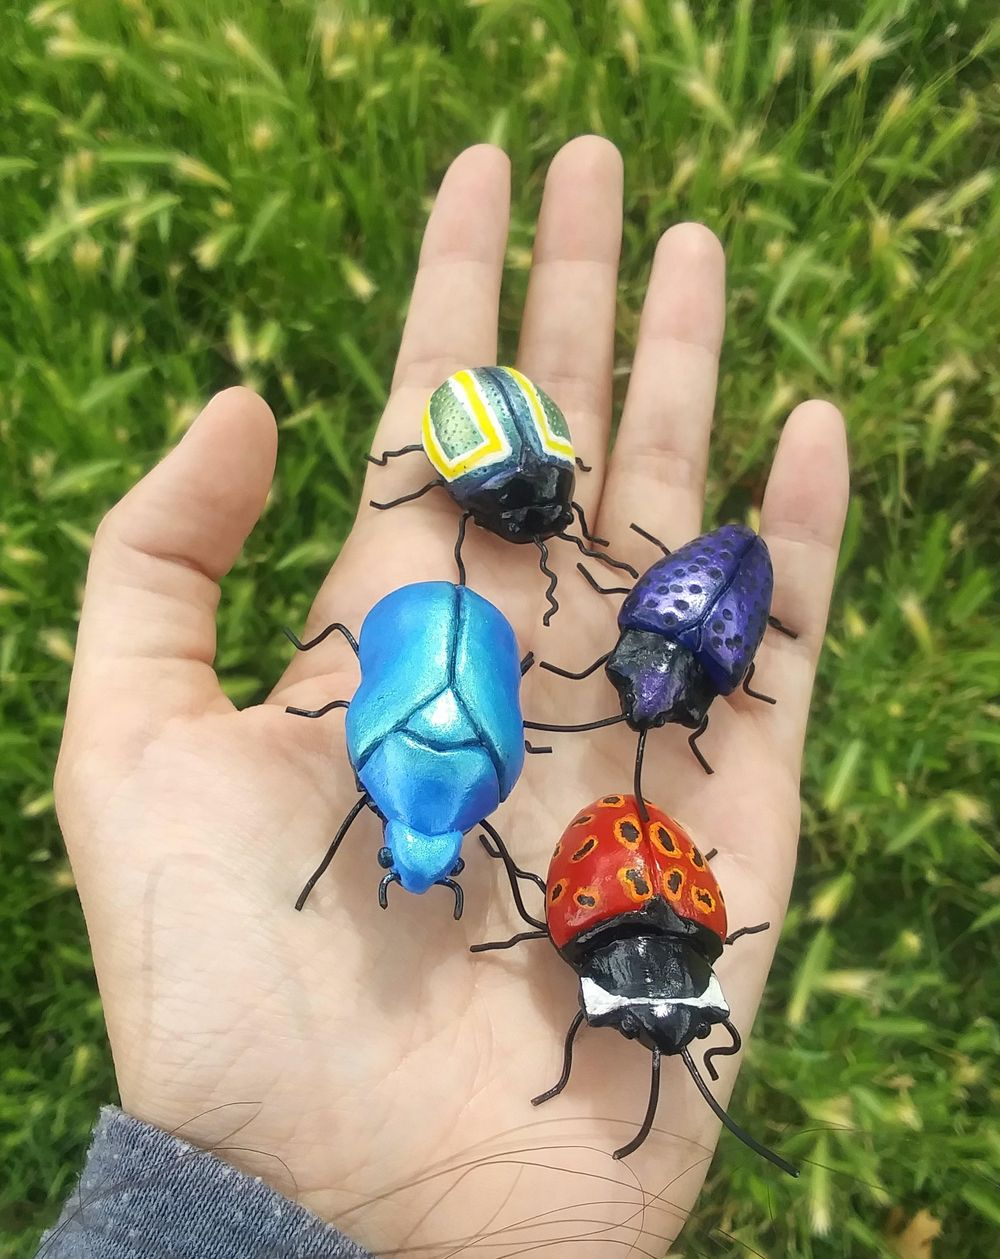 Beetles - image 1 - student project